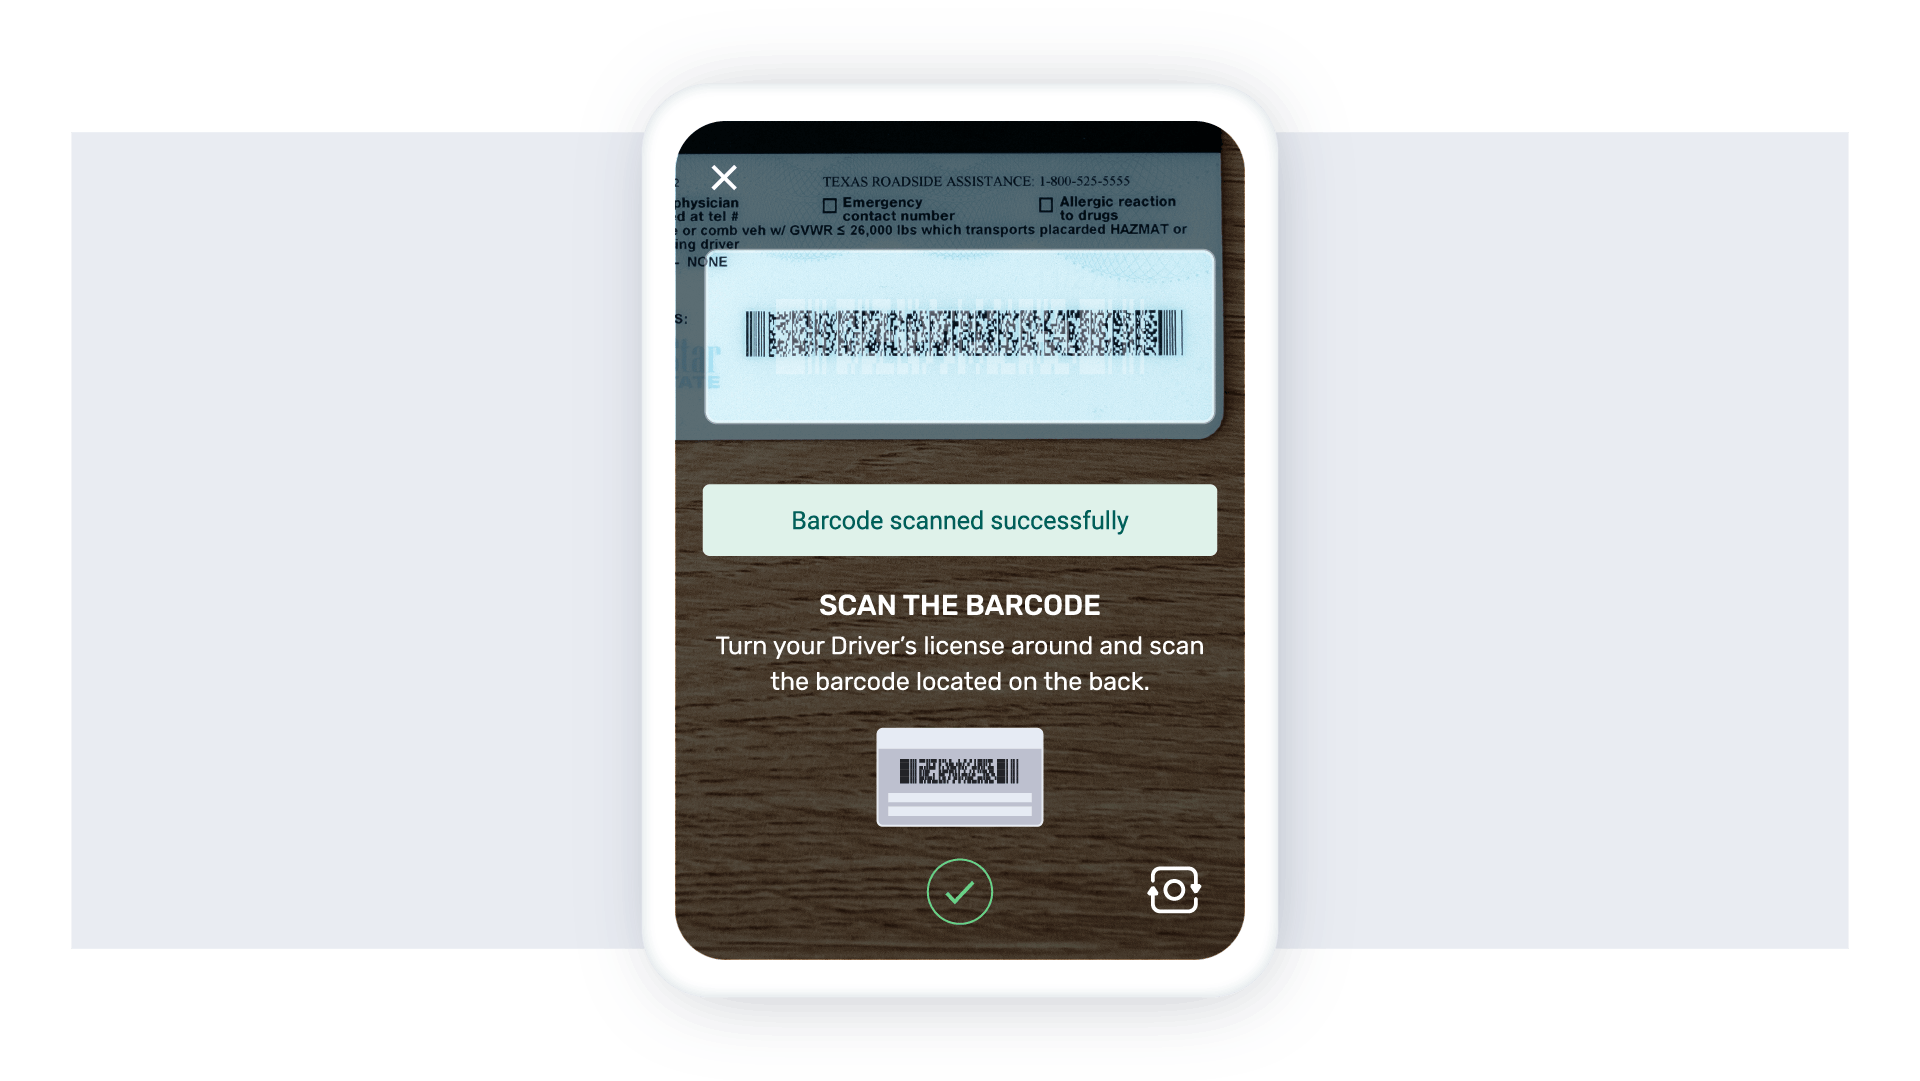 Veriff's Barcode Scanning Feature